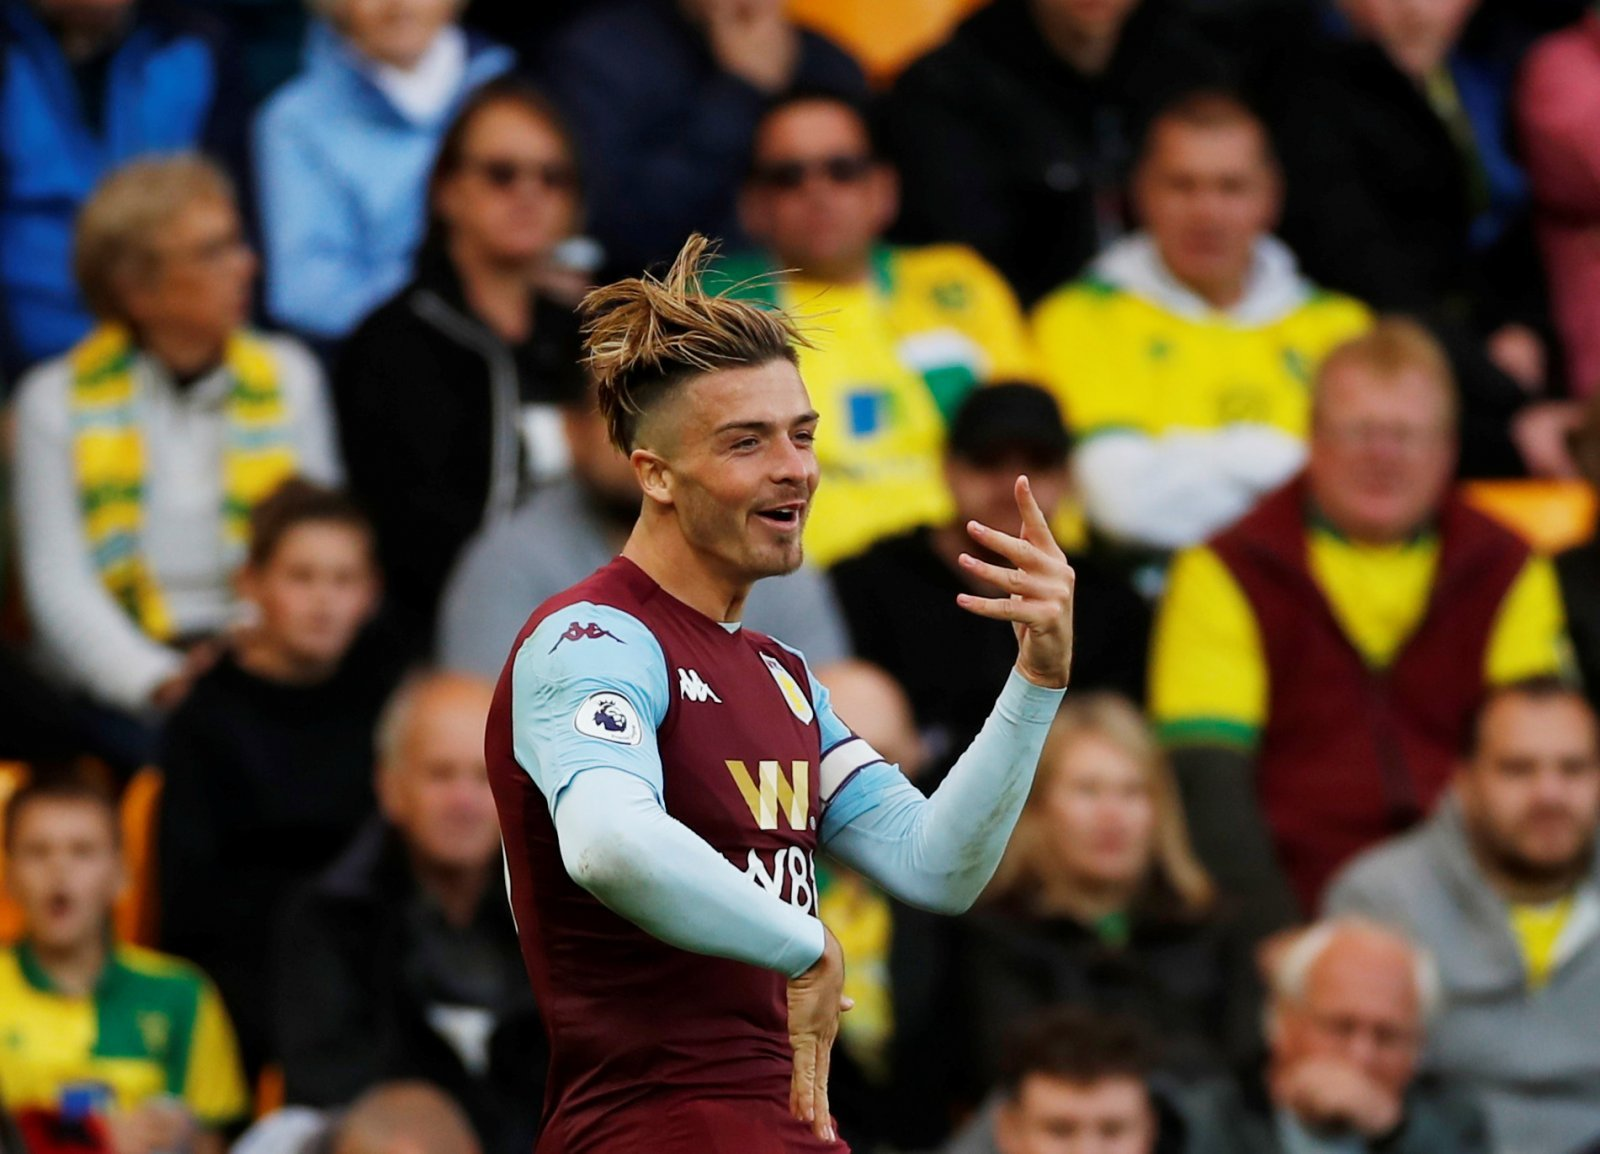 Liverpool: Many Reds fans want to see Jack Grealish at Anfield